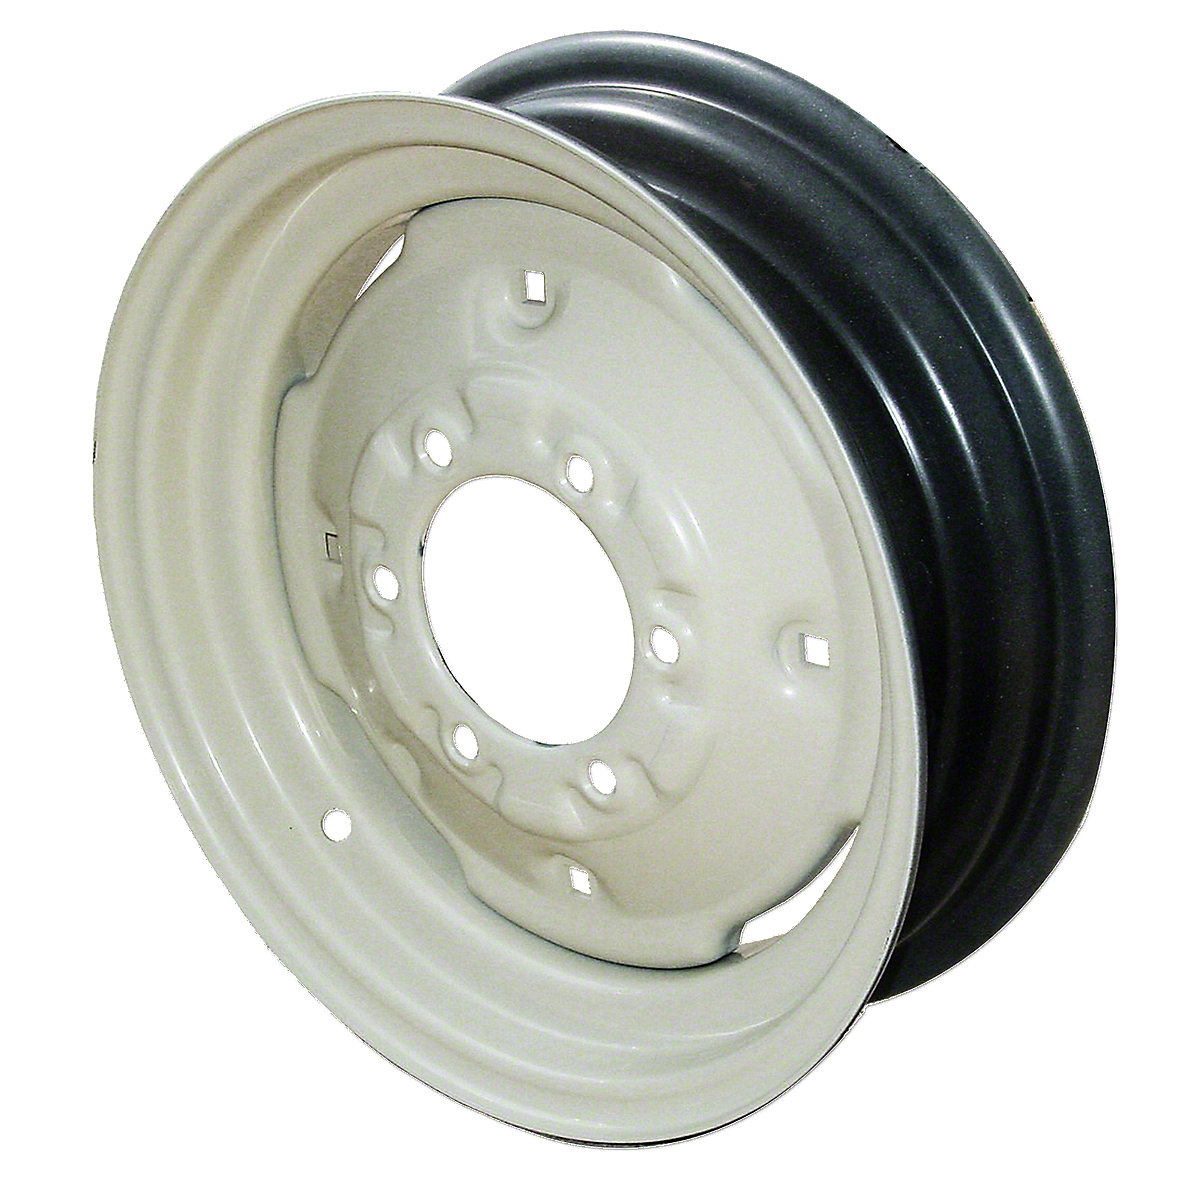 hight resolution of 4 5 x 16 6 lug front wheel with 4 wheel weight holes for oliver 77